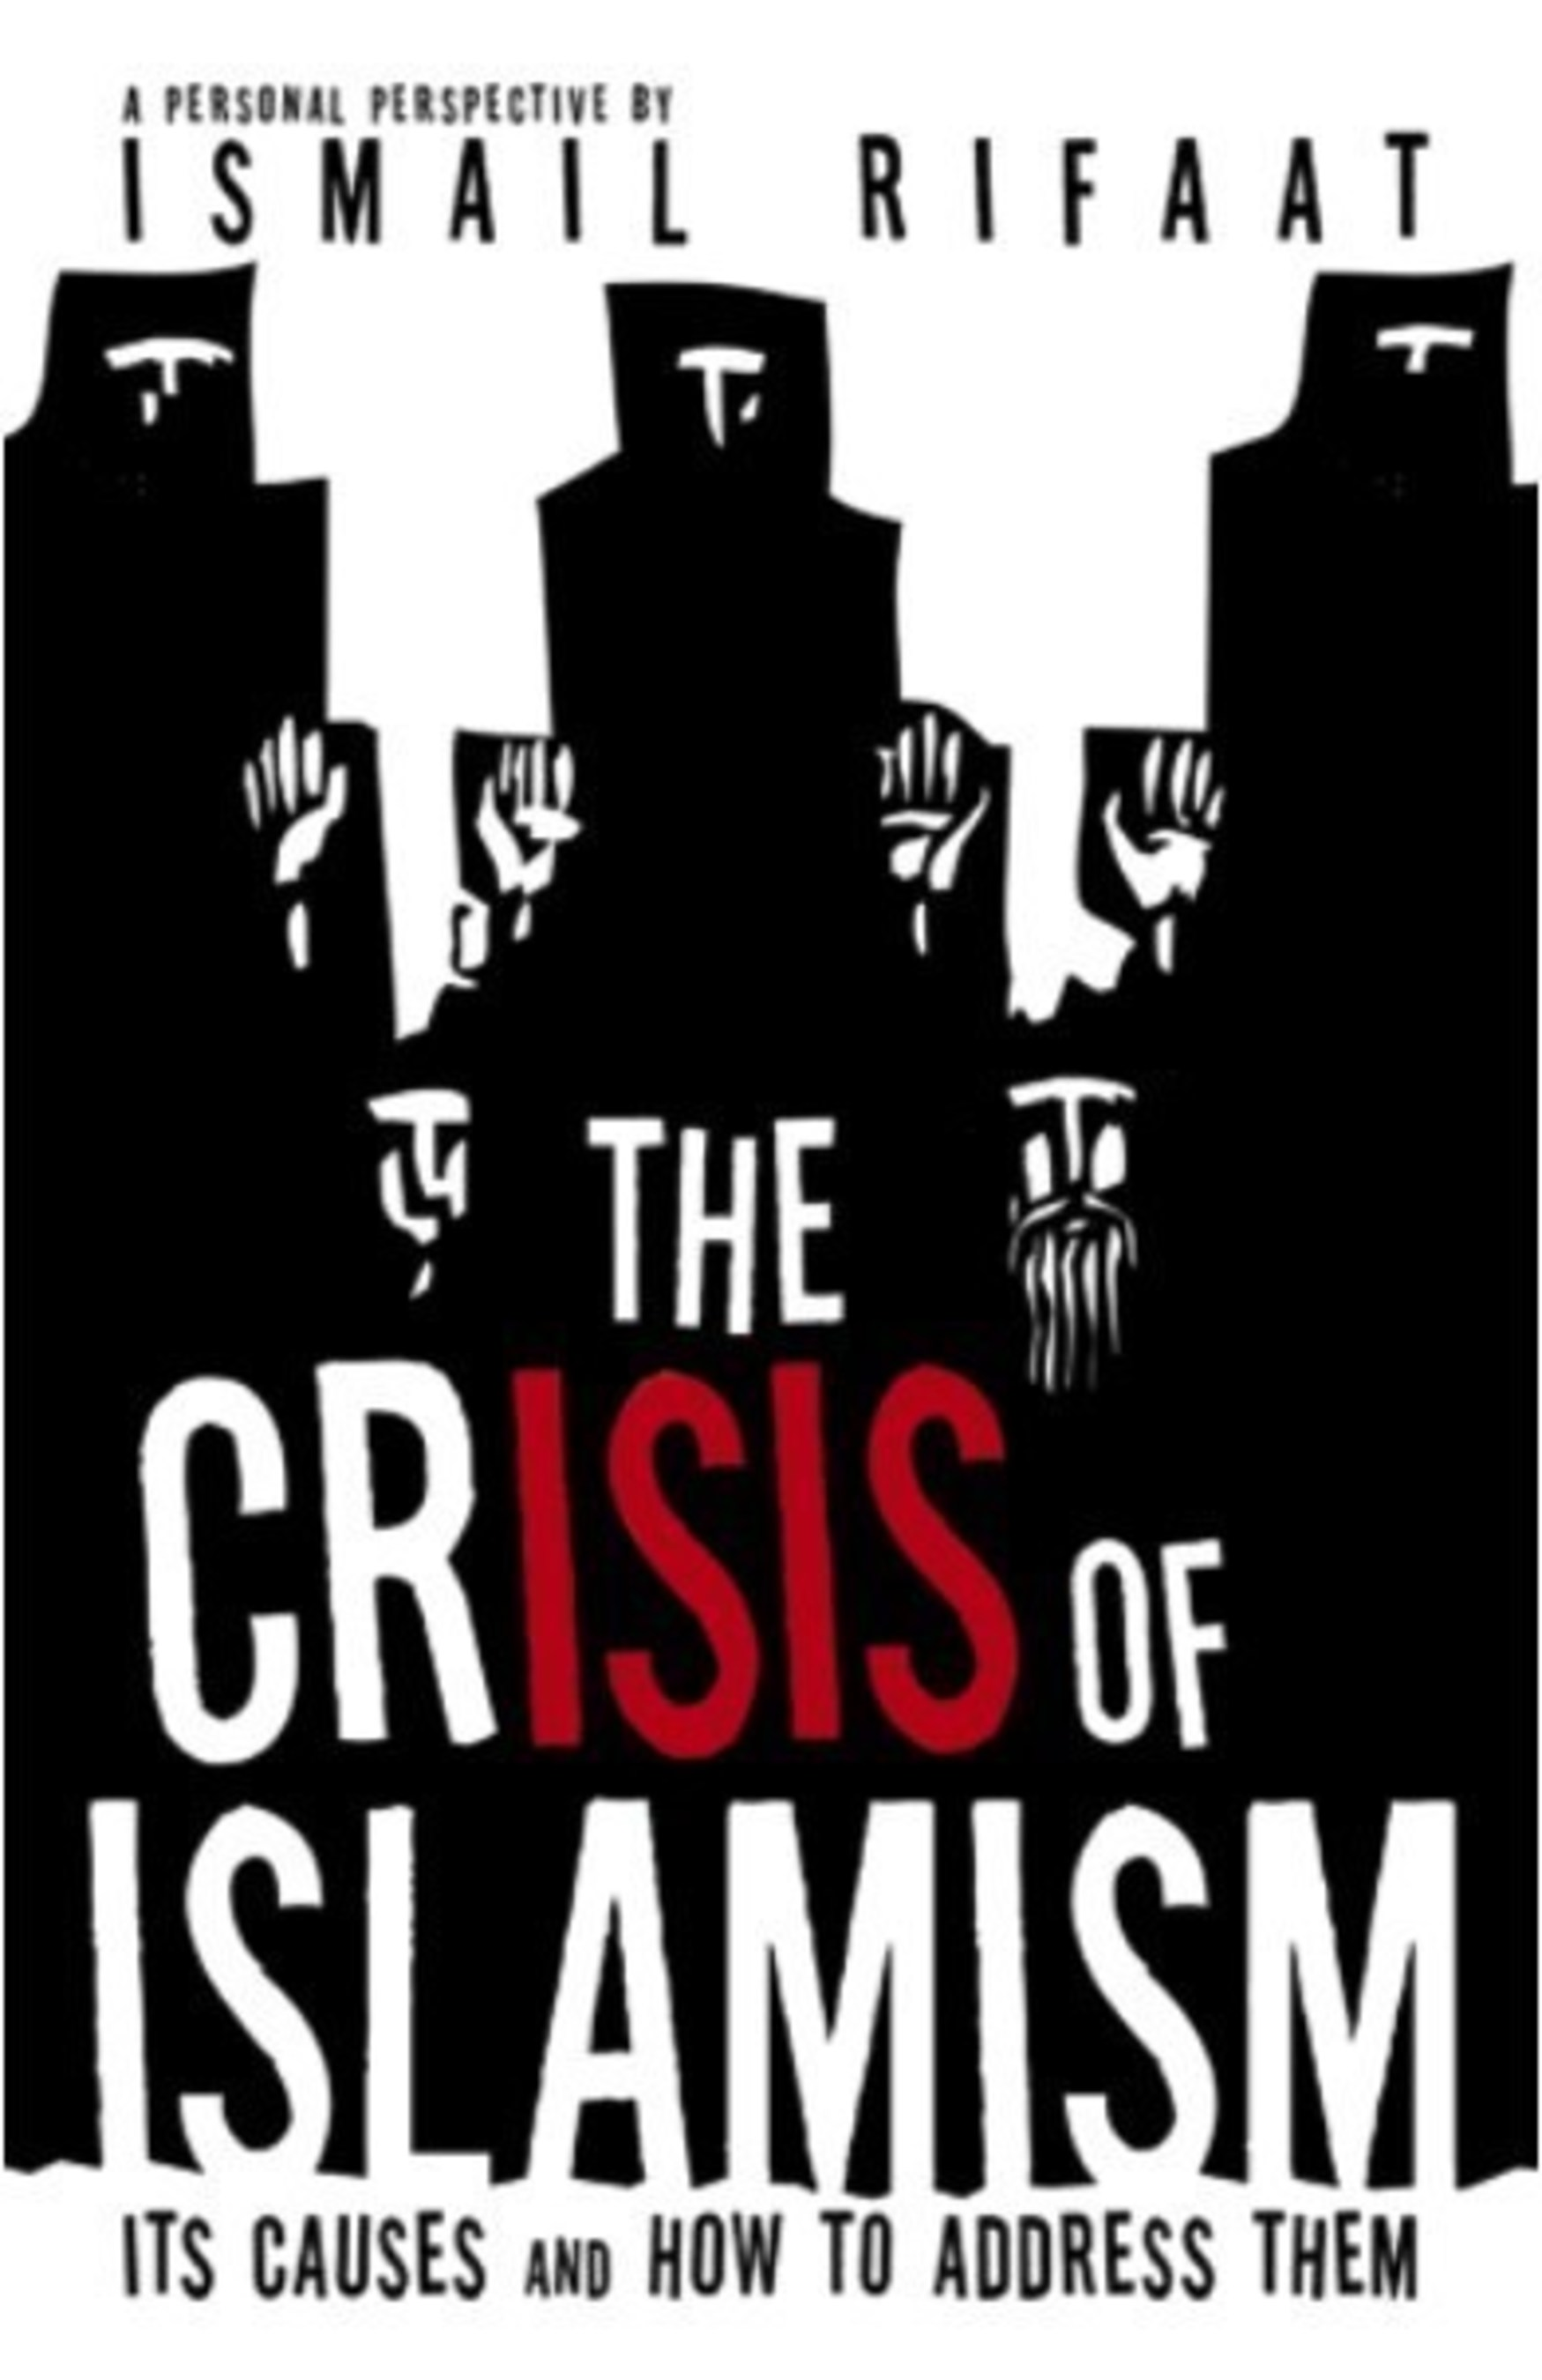 The Crisis of Islamism, Its Causes and How to Address Them in New Book From Author Ismail Rifaat